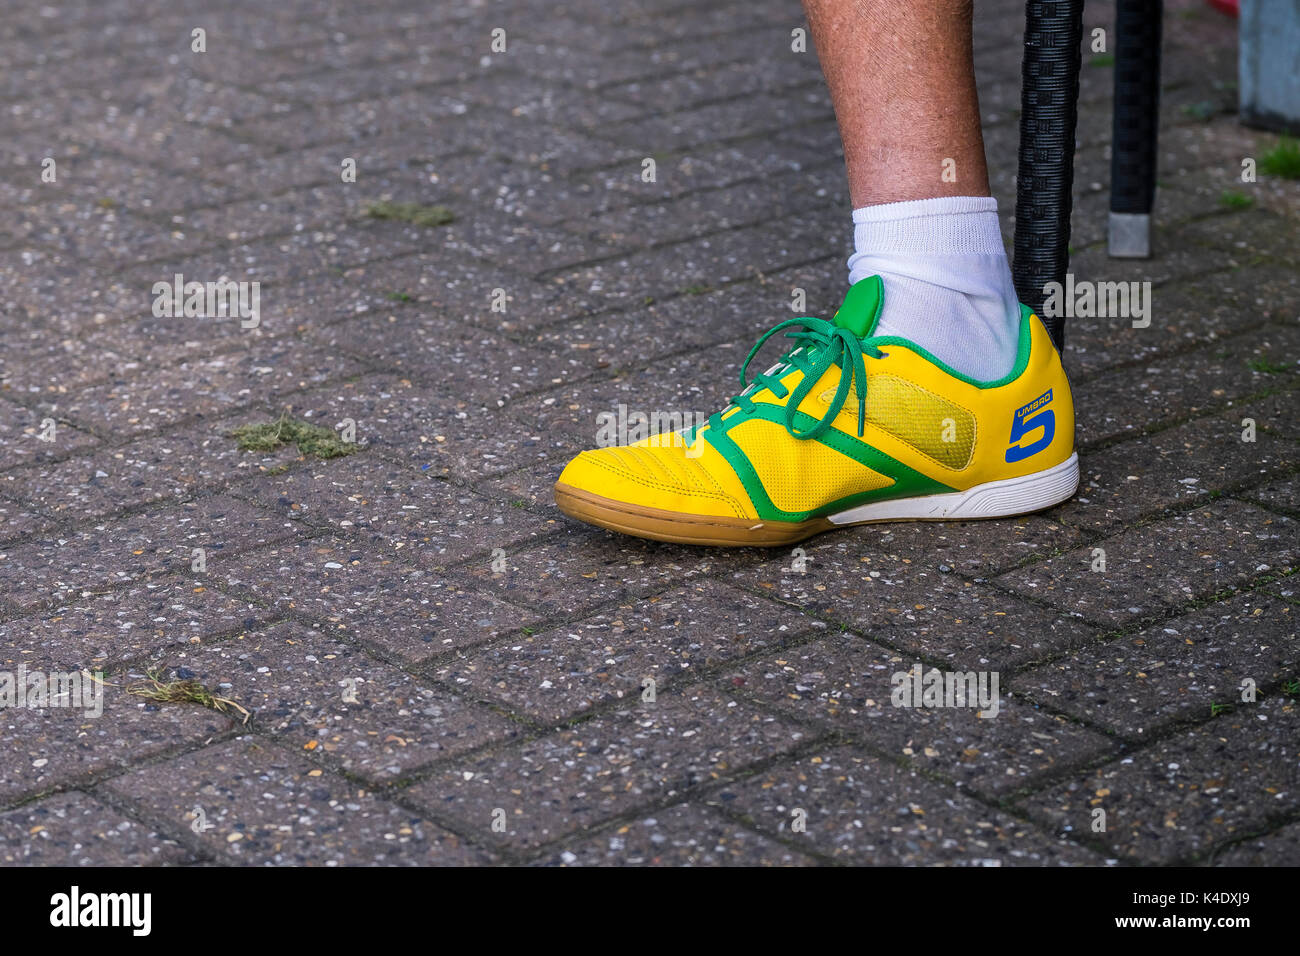 A left foot wearing a brightly coloured yellow Umbro trainer. - Stock Image